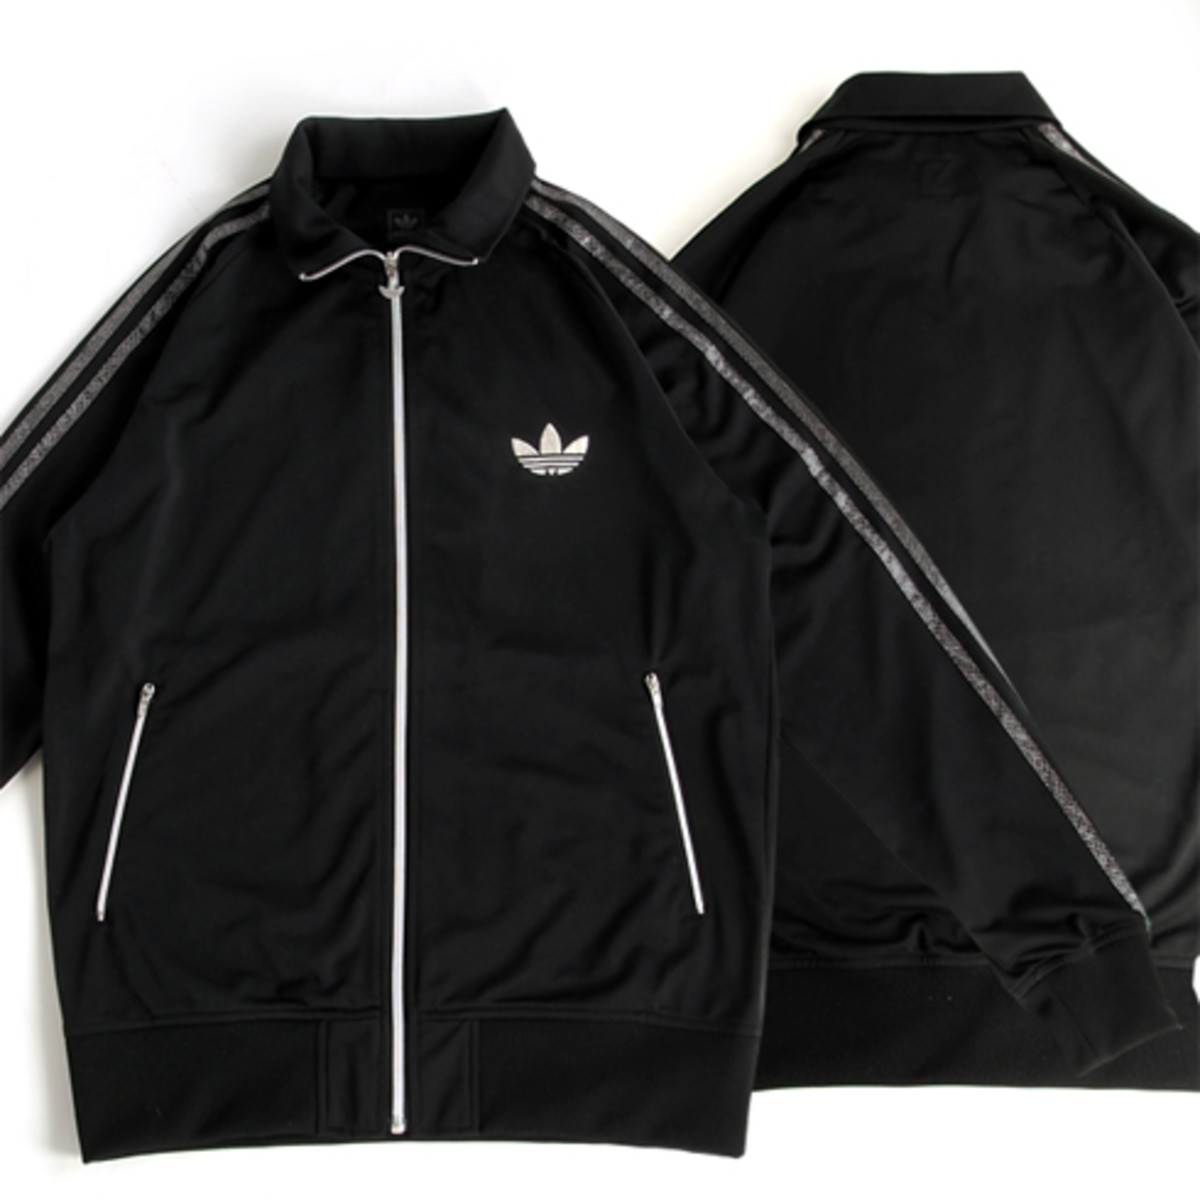 adidas-originals-animal-collection-02